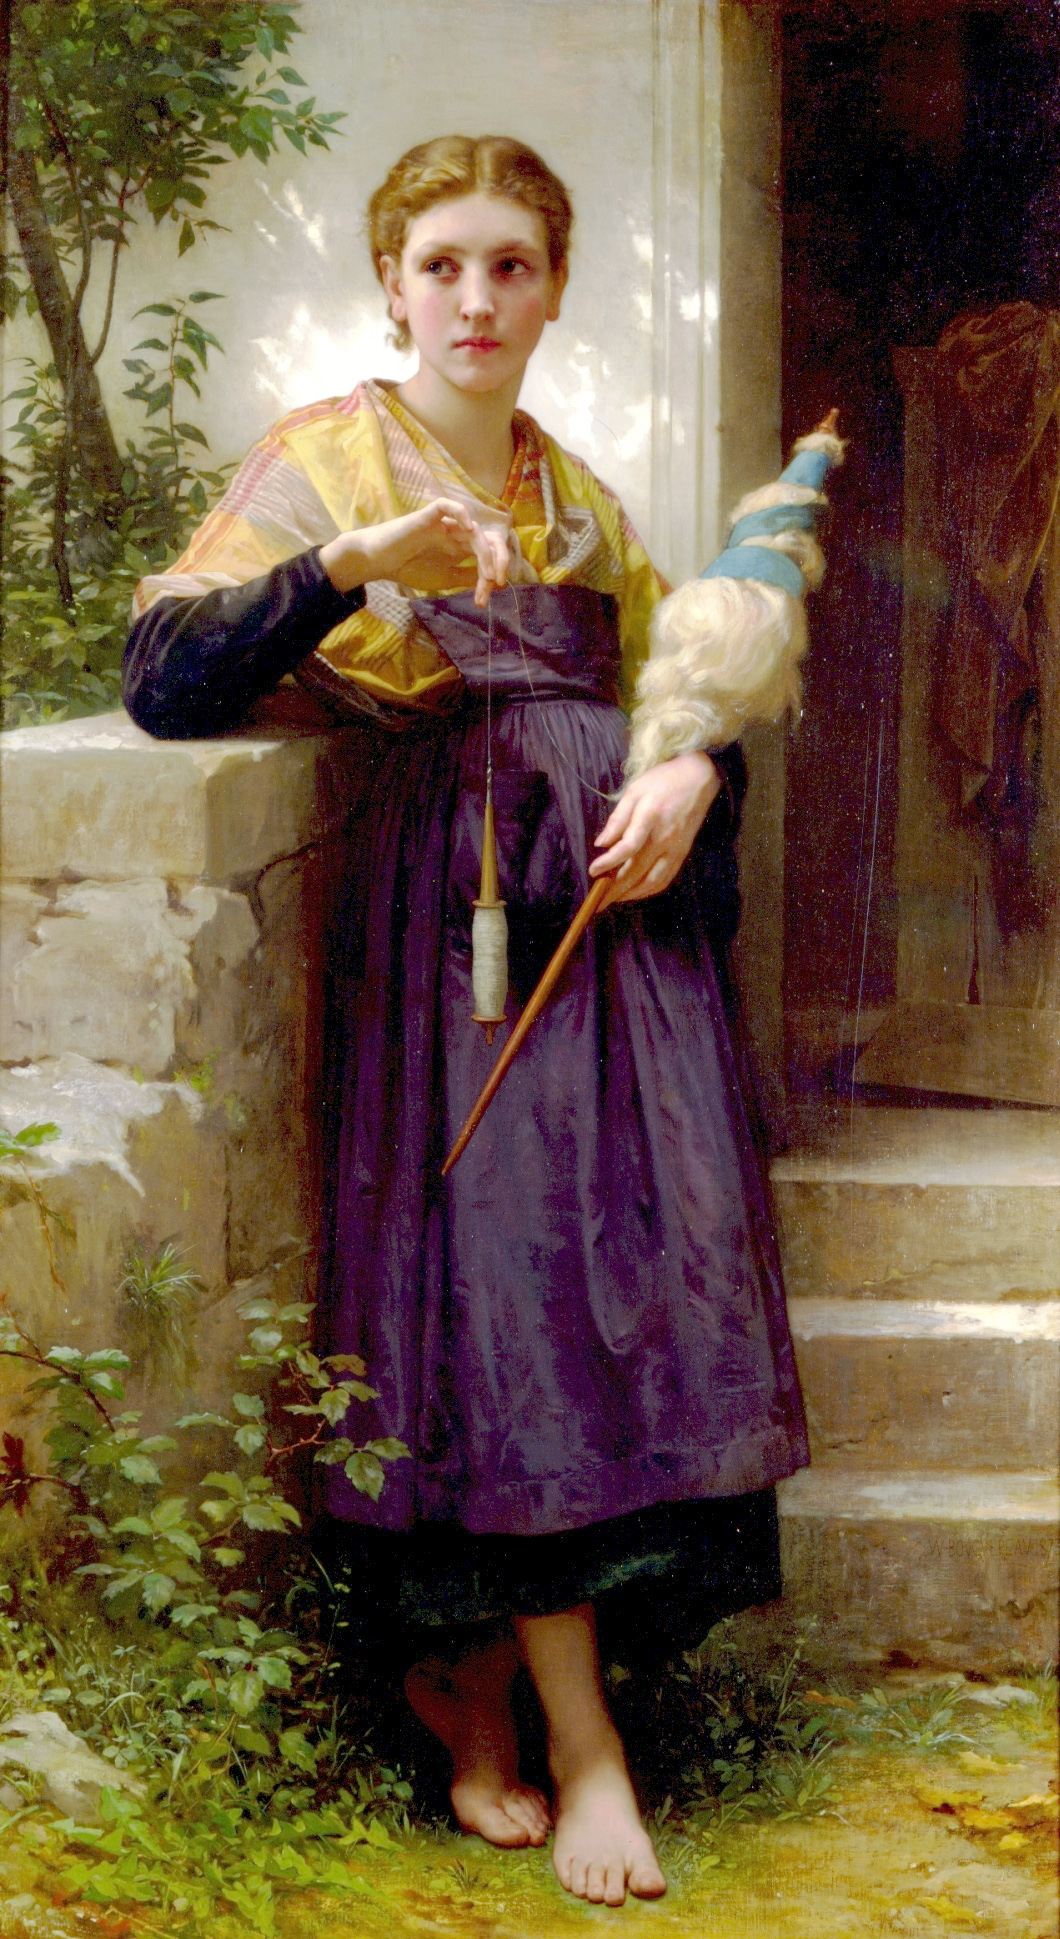 William Adolphe Bouguereau , La Fileuse, 1873